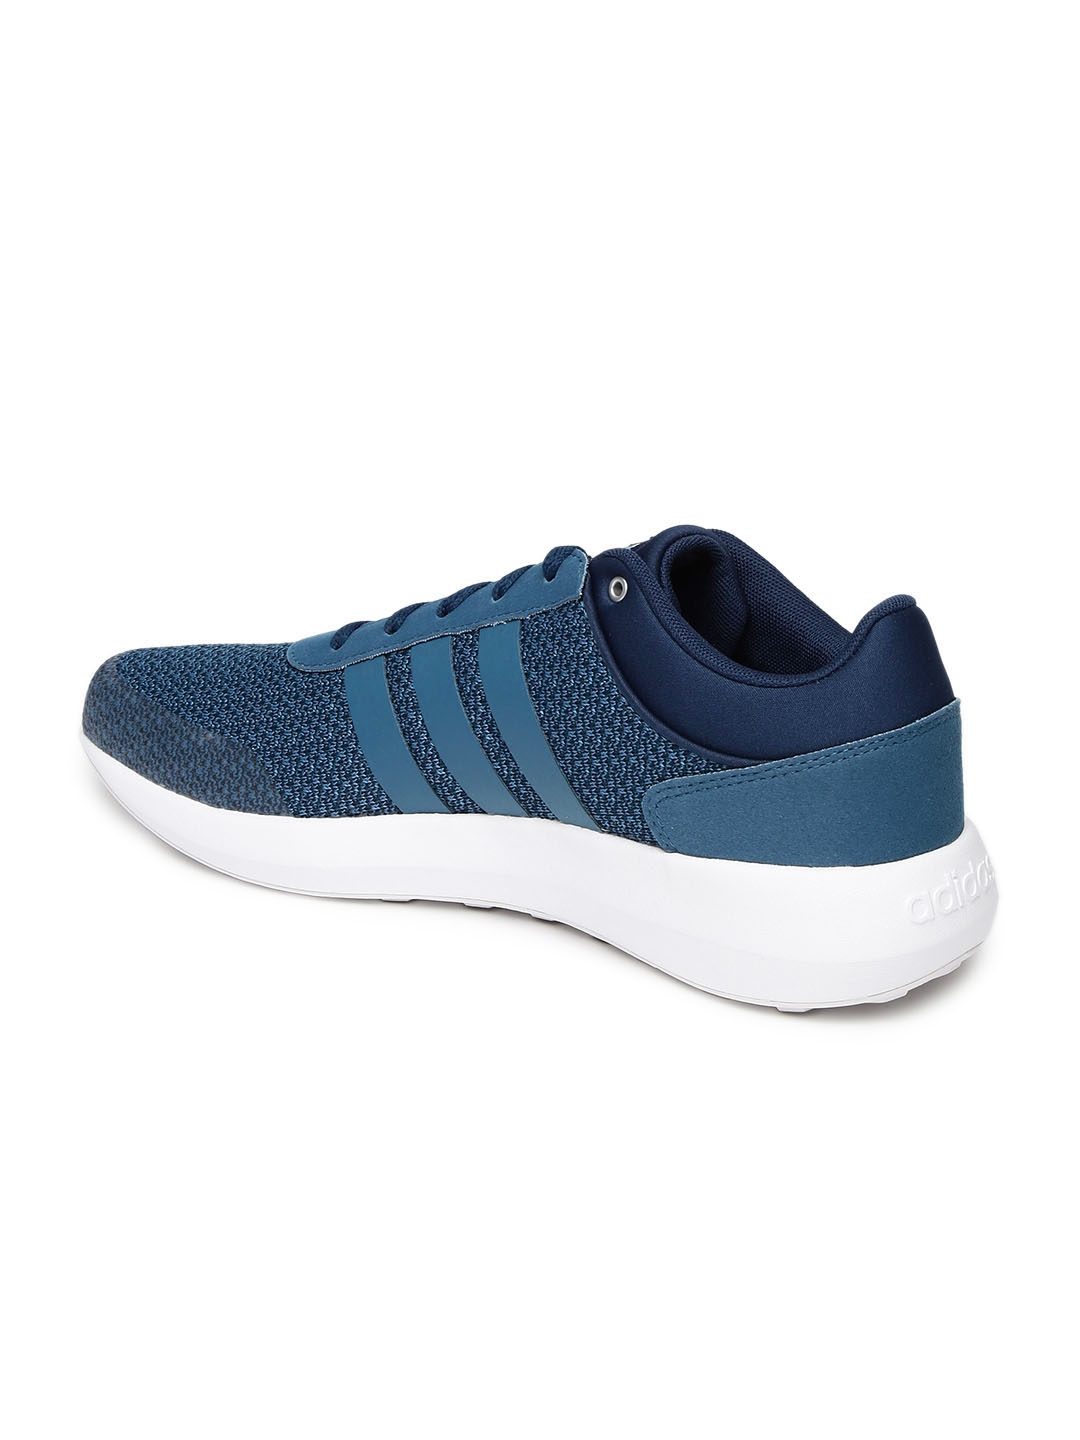 Buy Race Sneakers Men For Casual Blue Neo Shoes Cloudfoam Adidas rqYXgr